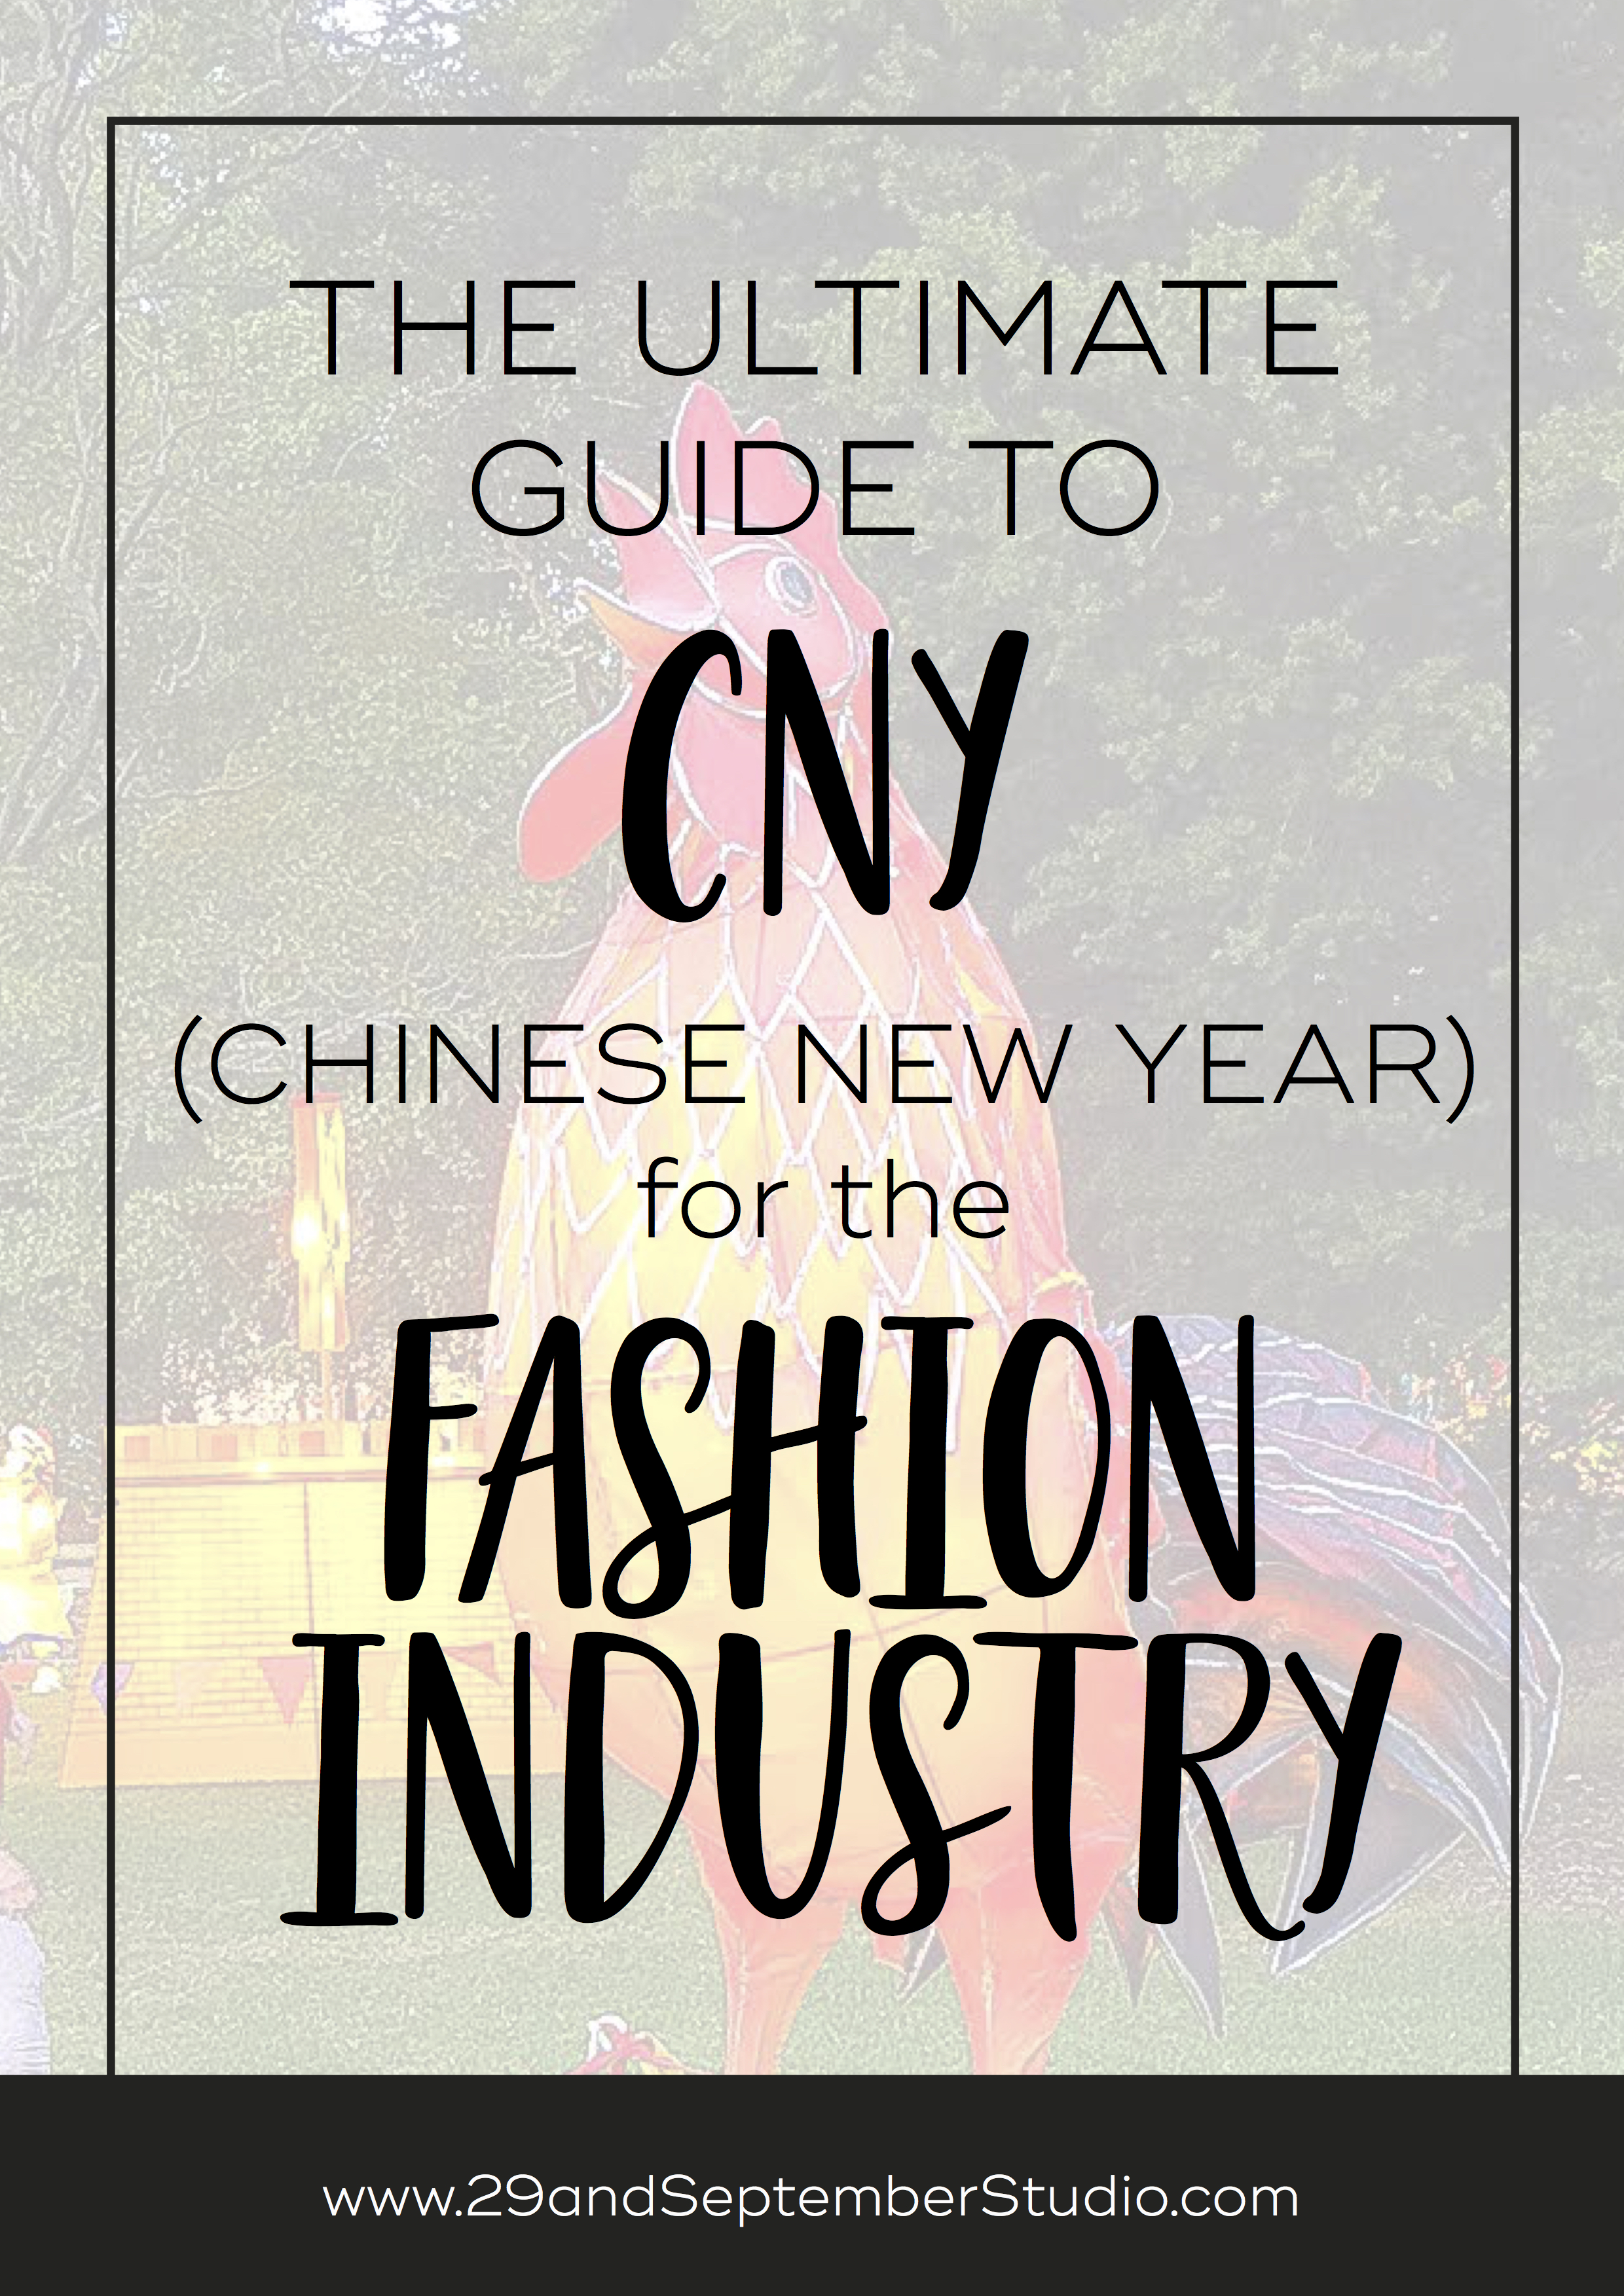 The ultimate guide to CNY (Chinese New Year) for the fashion industry. 29andSeptember Studio